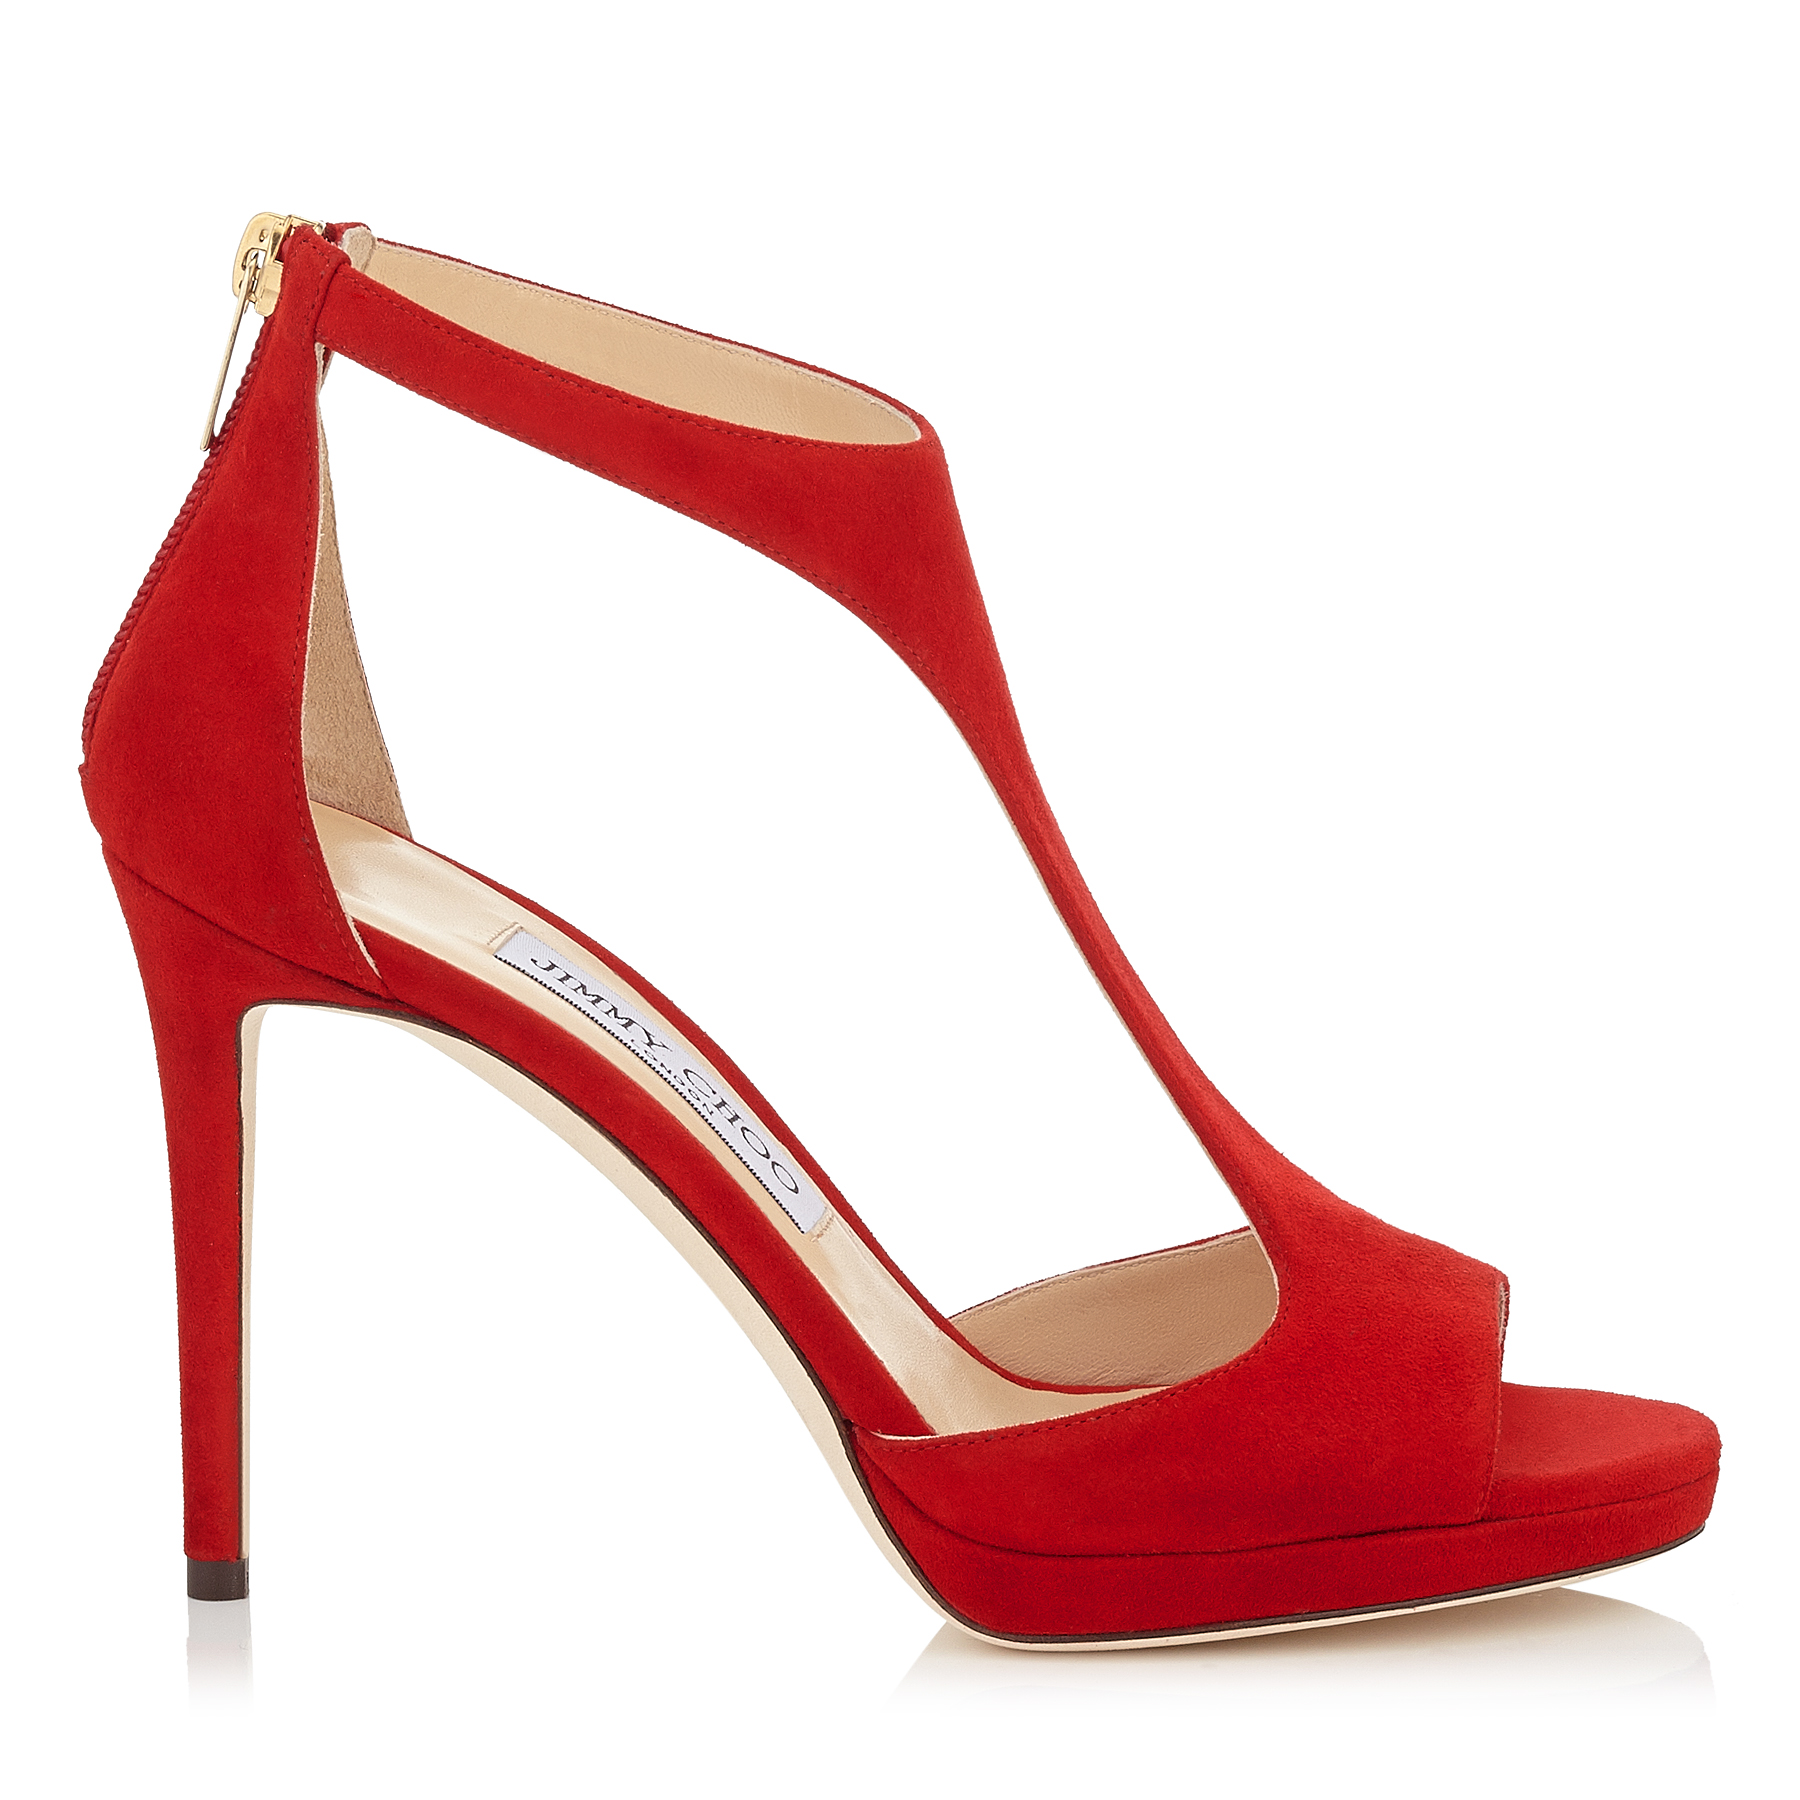 LANA 100 Red Suede T-Bar Sandals